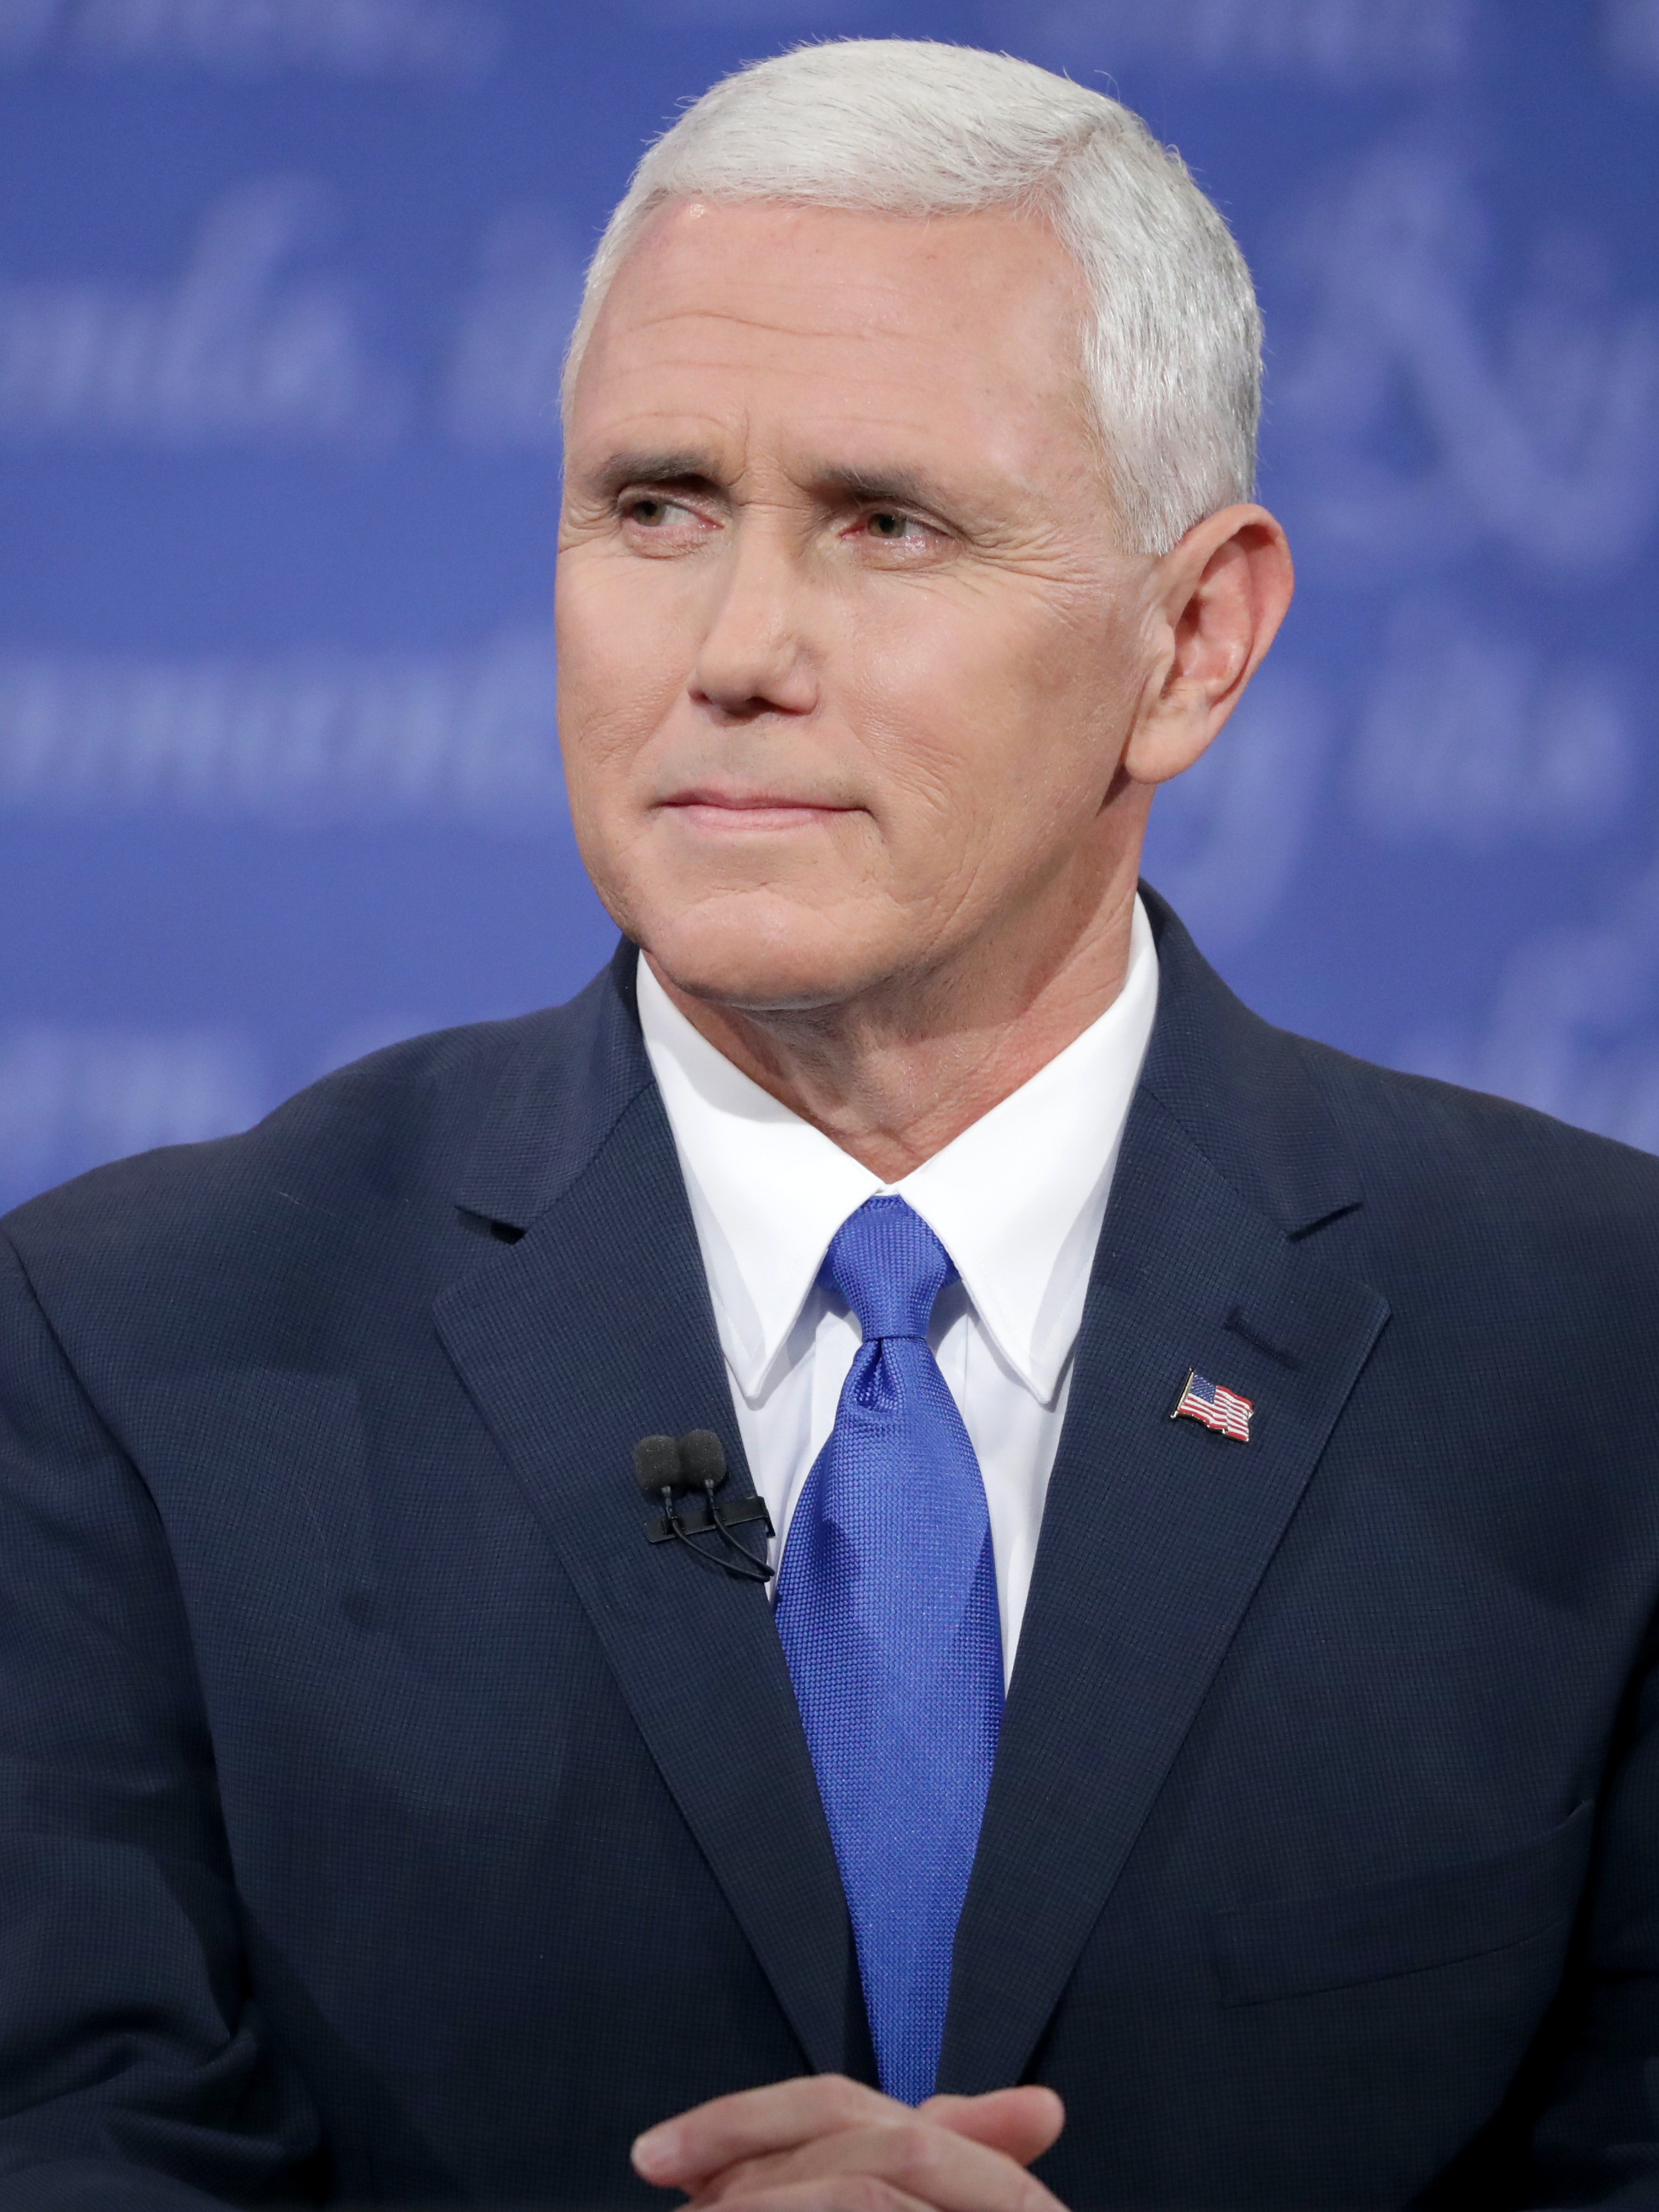 Republican vice presidential nominee Mike Pence listens during the Vice Presidential Debate with Democratic vice presidential nominee Tim Kaine at Longwood University on October 4, 2016 in Farmville, Virginia. This is the second of four debates during the presidential election season and the only debate between the vice presidential candidates.